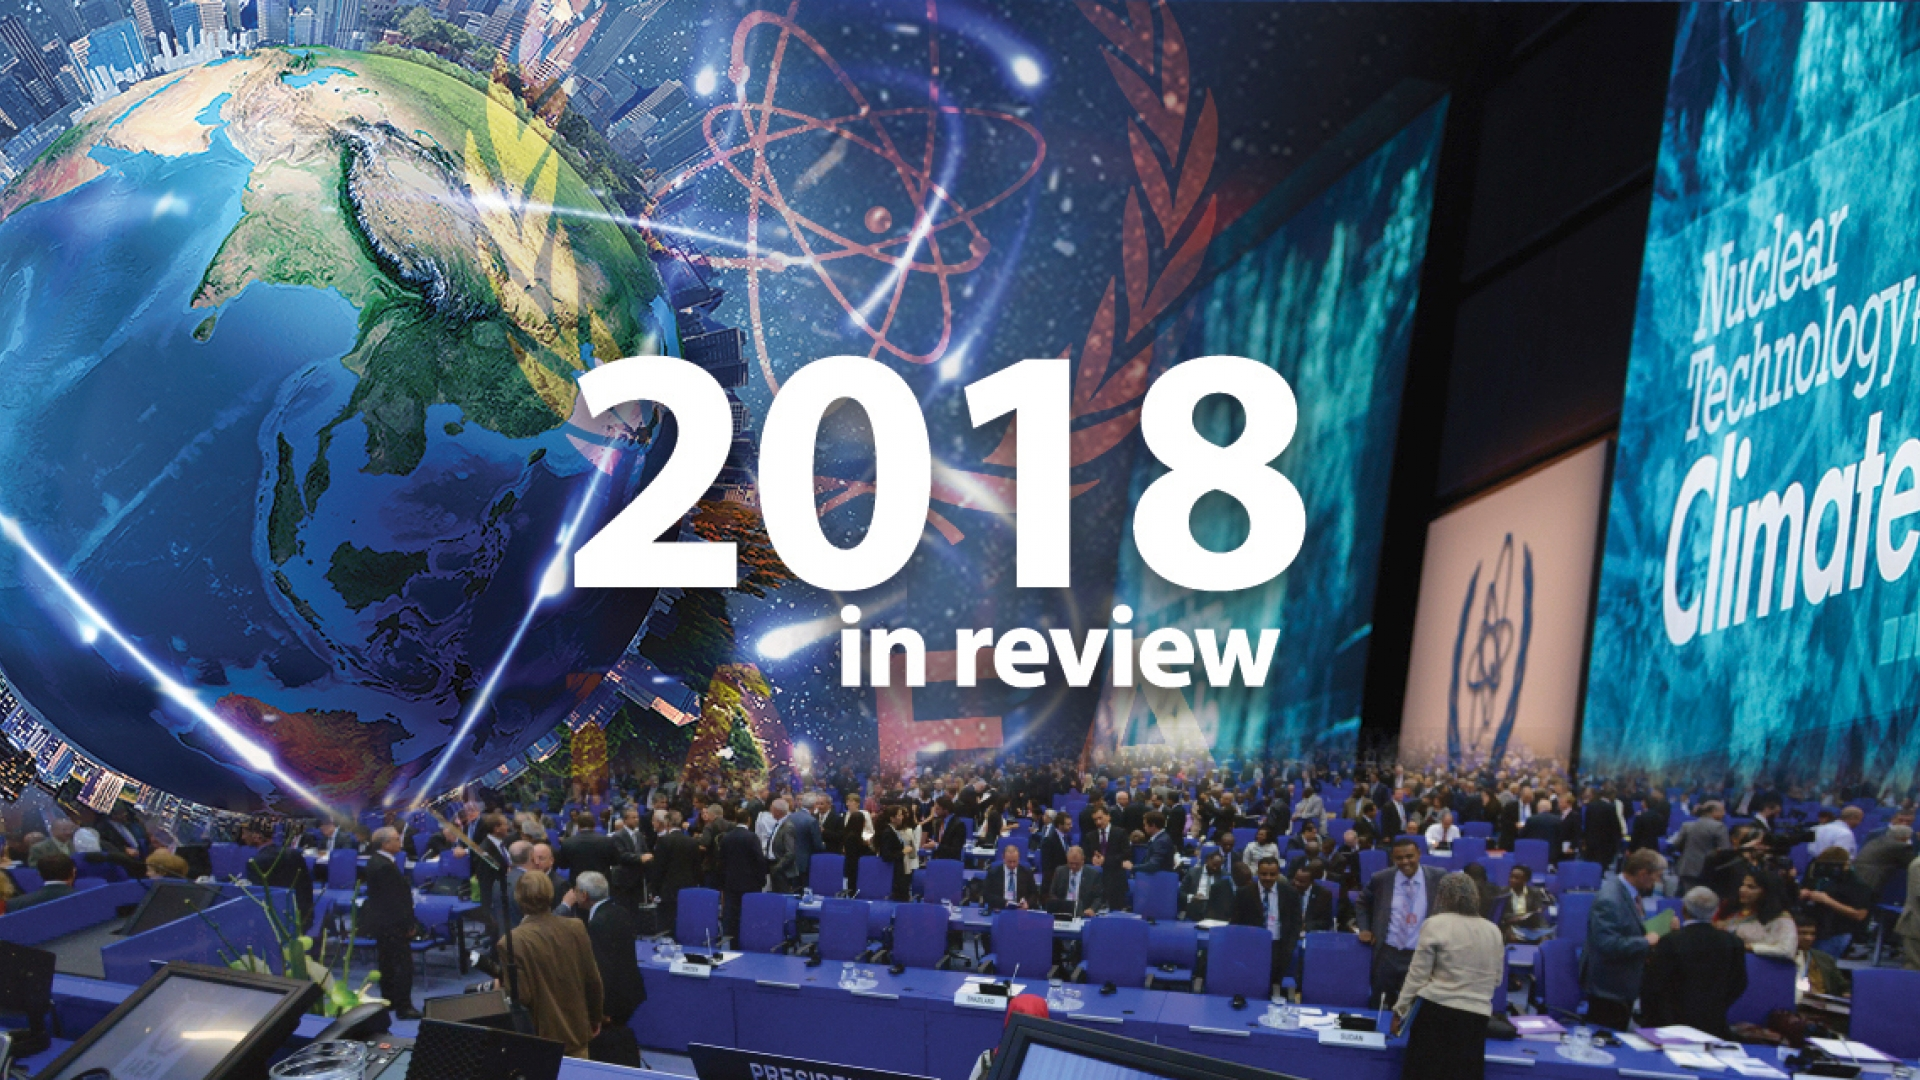 IAEA Highlights And Achievements In 2018